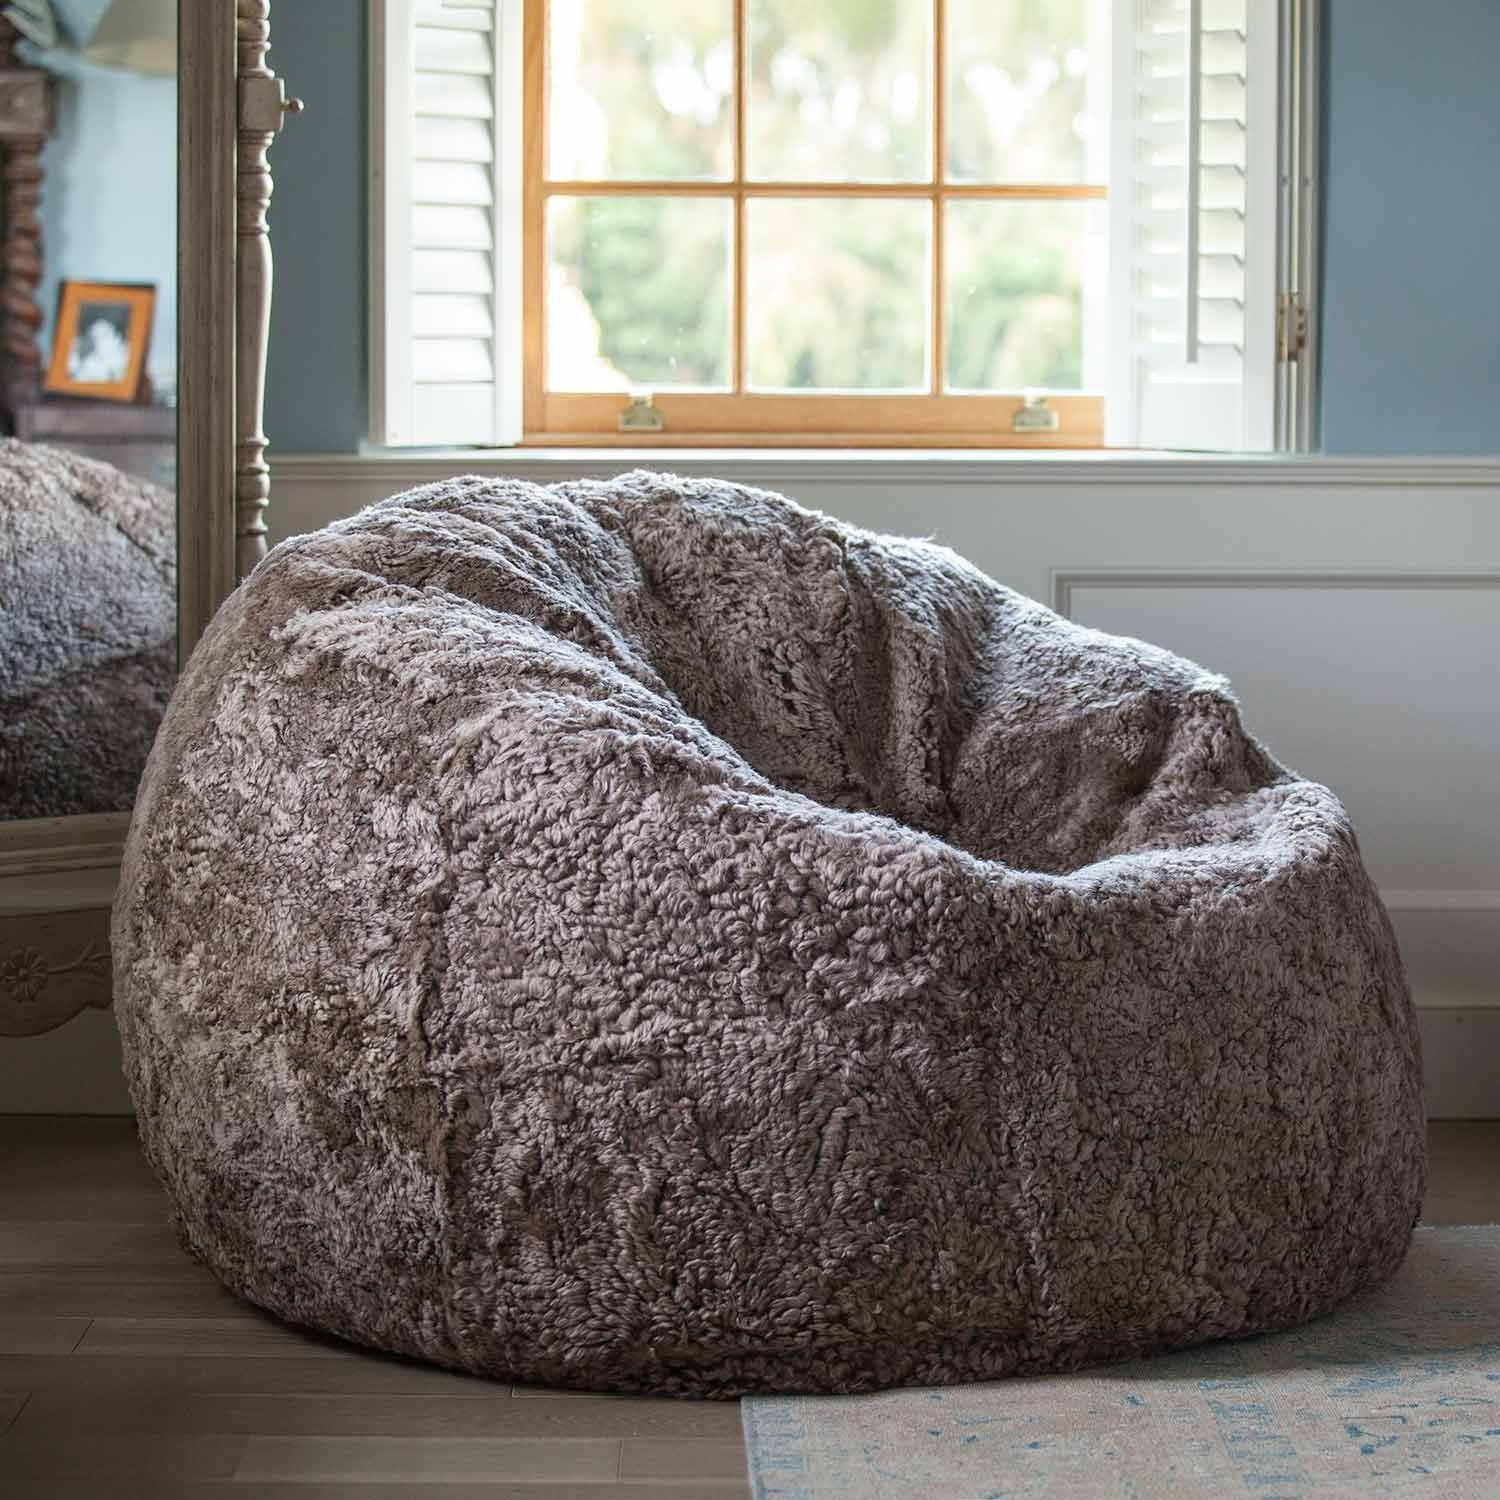 Miraculous Giant Sheepskin Beanbag Extra Large Bean Bag The Wool Company Gmtry Best Dining Table And Chair Ideas Images Gmtryco